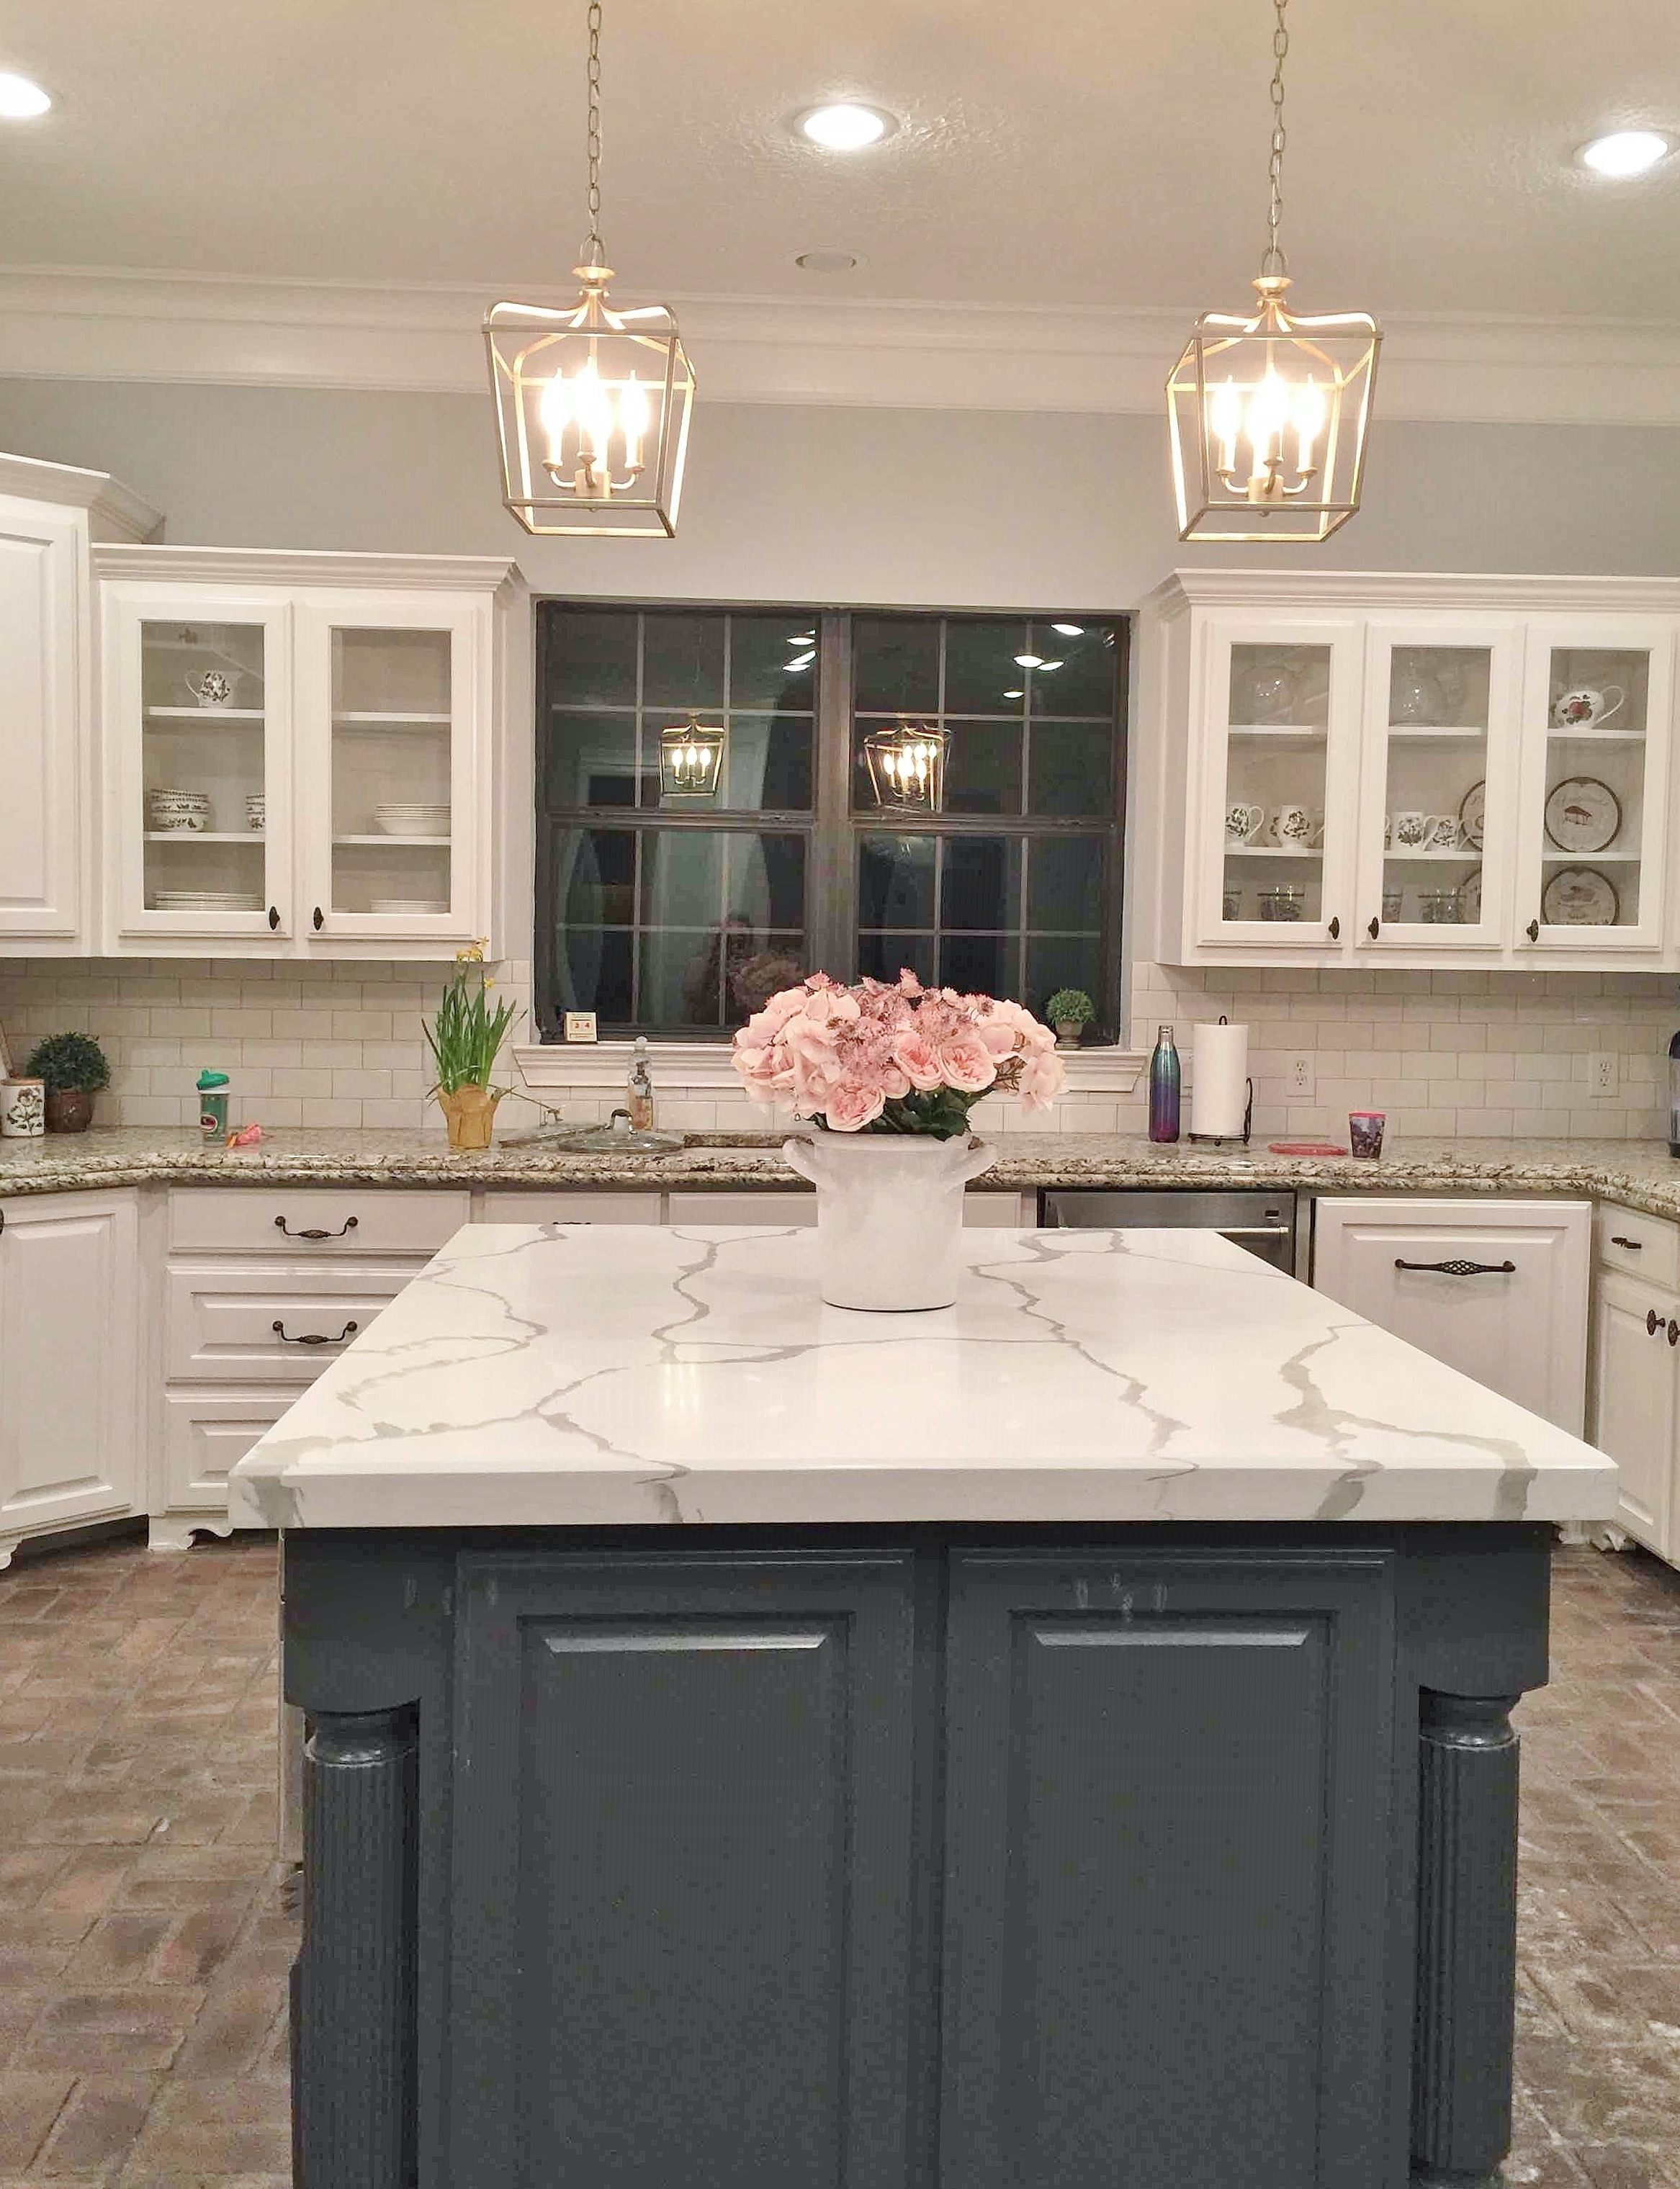 White Marble Island Before And After A Partial Kitchen Remodel Done W A Consultation